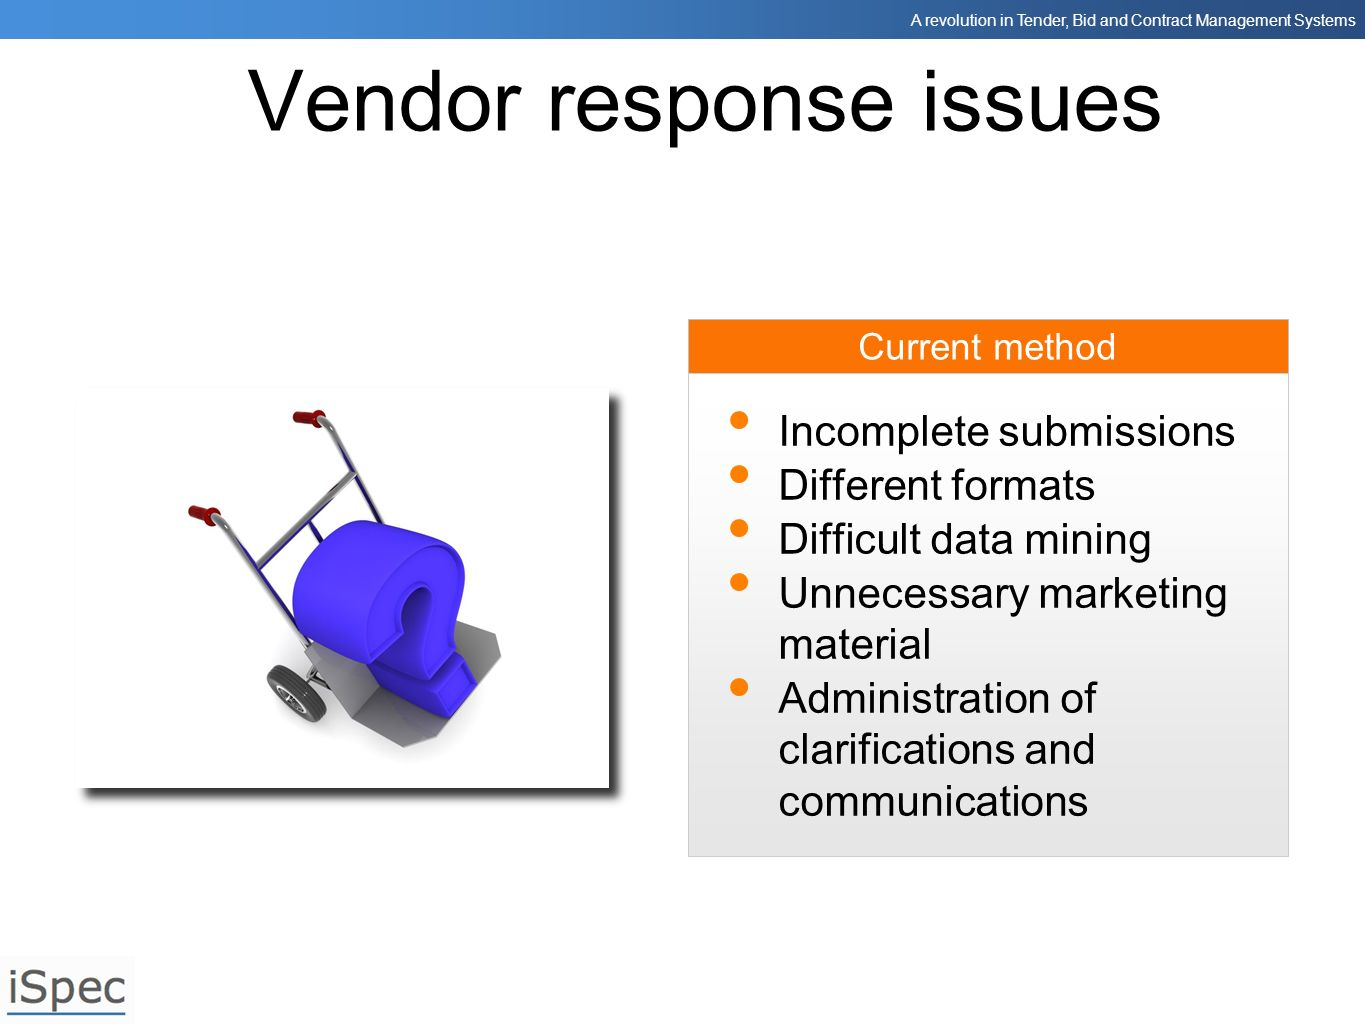 Vendor response issues